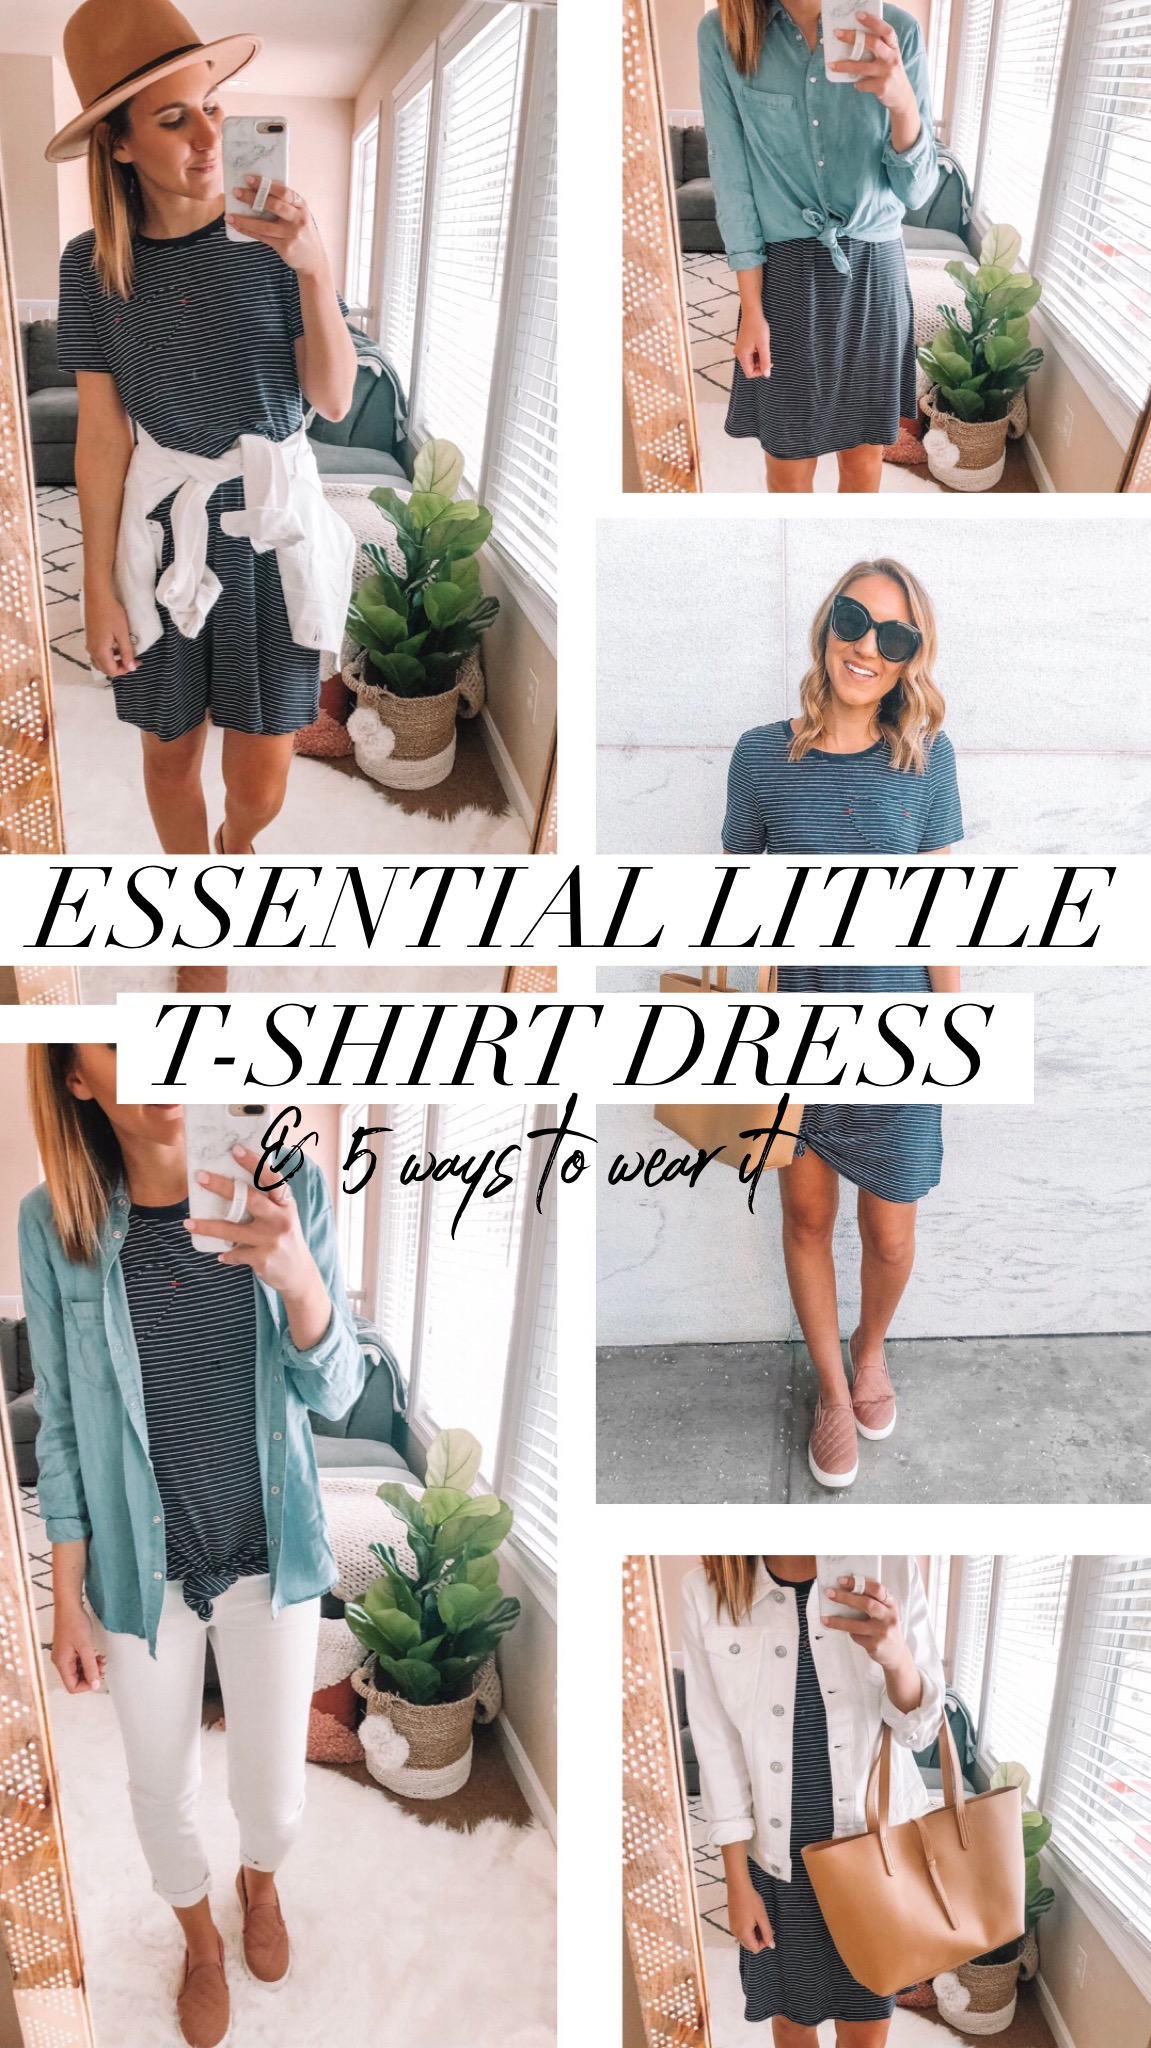 Essential Little T-shirt Dress & 5 Ways to Wear It